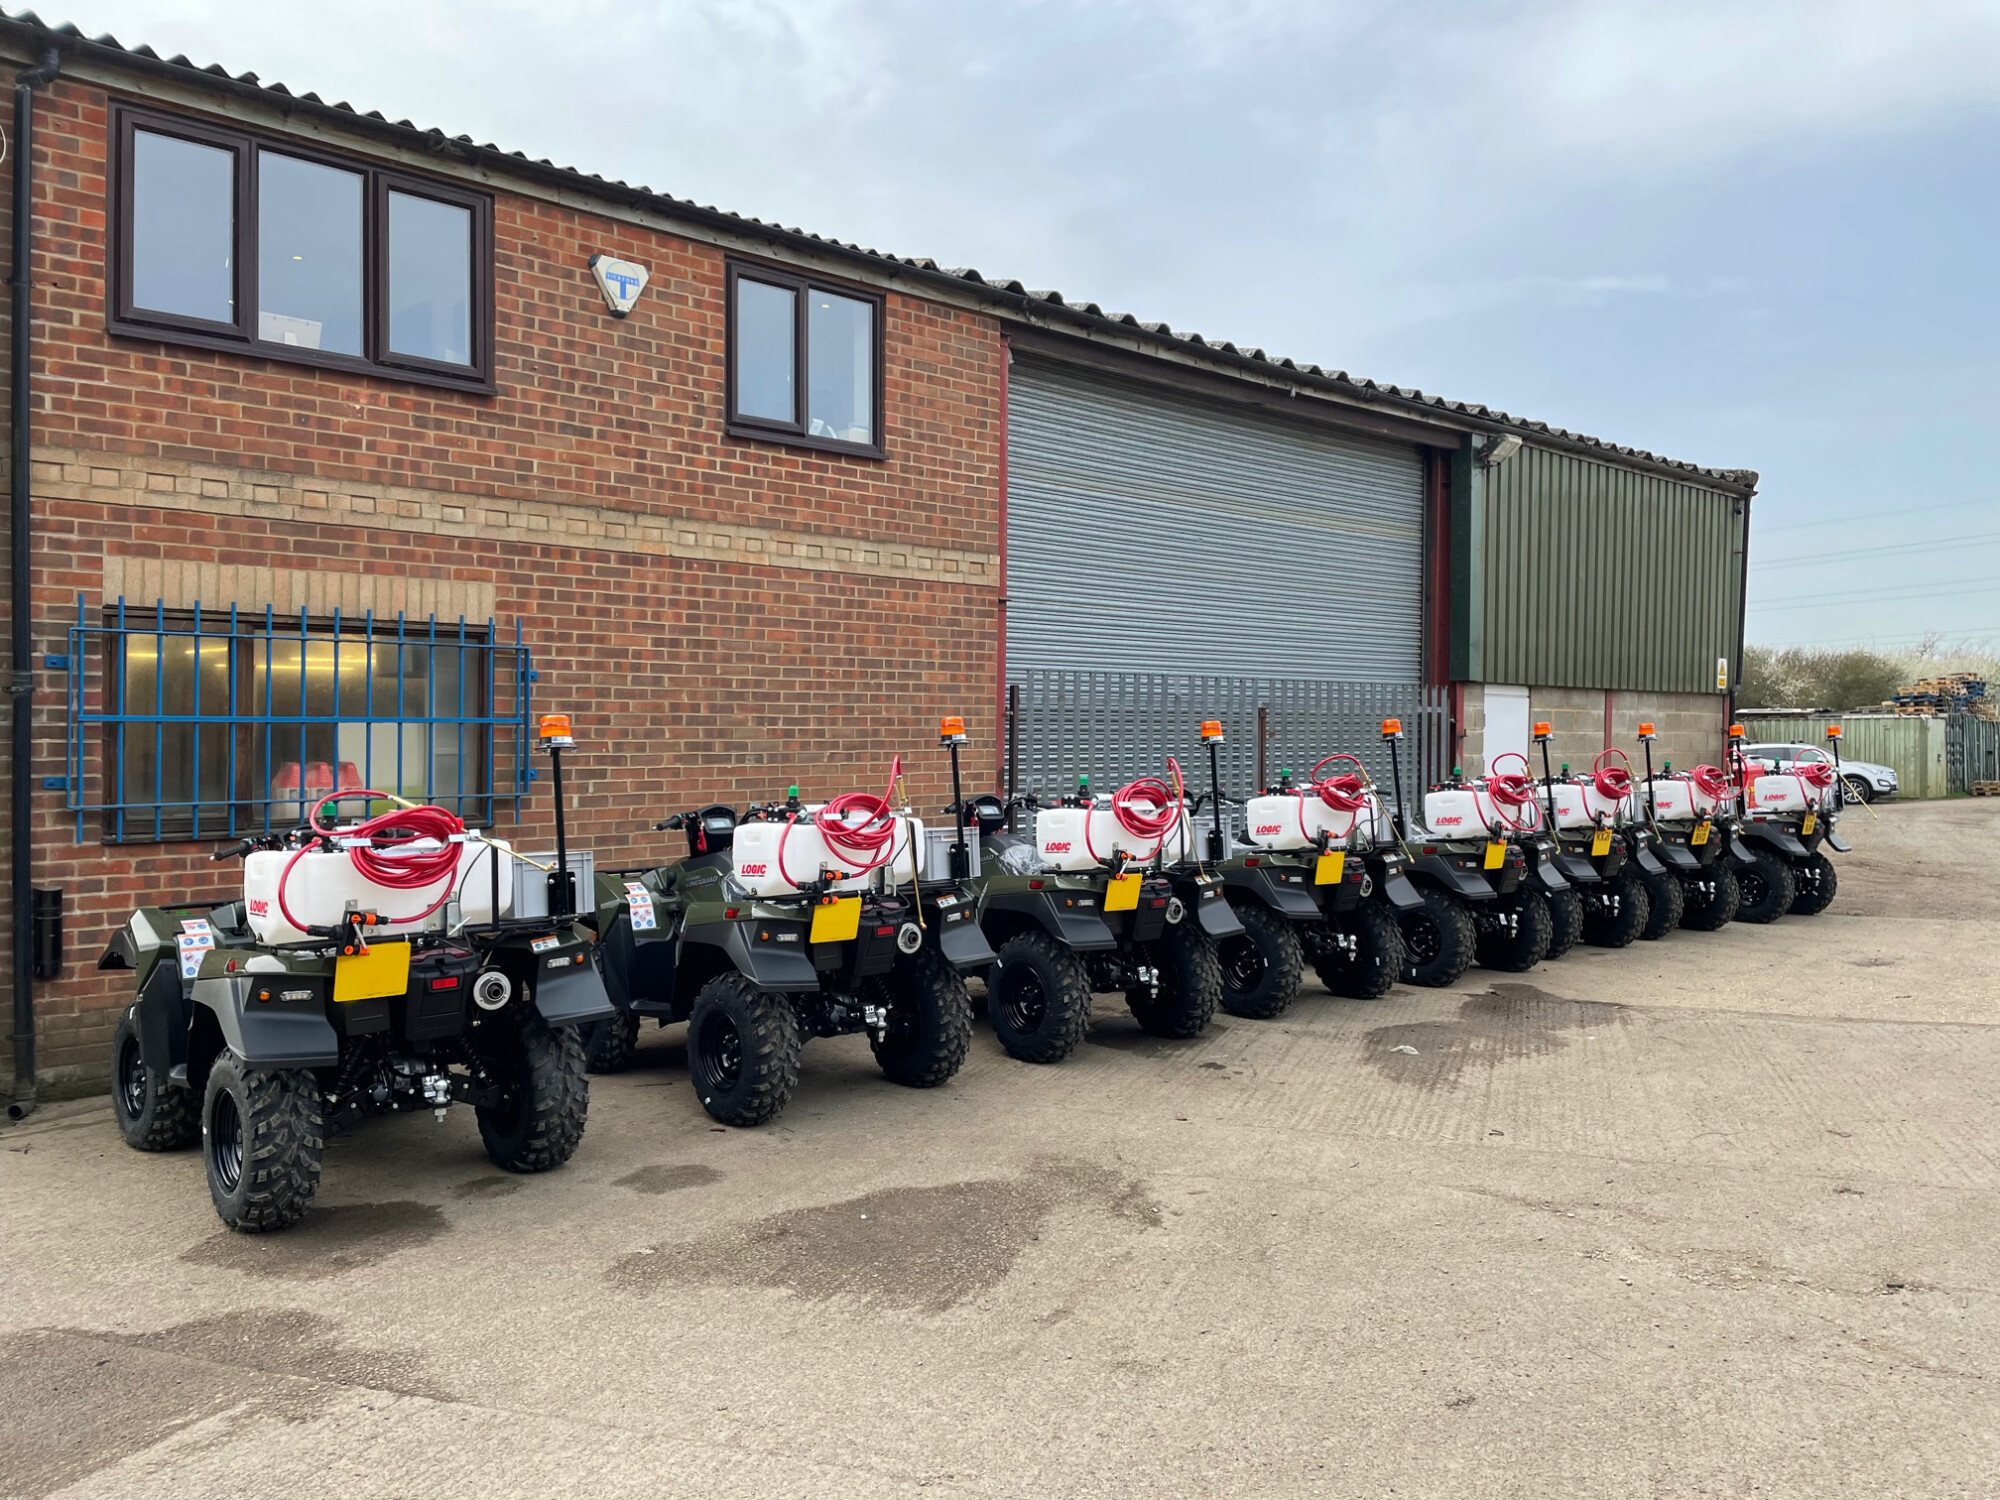 Suzuki ATVs lined up outside the Bedfordshire workshop